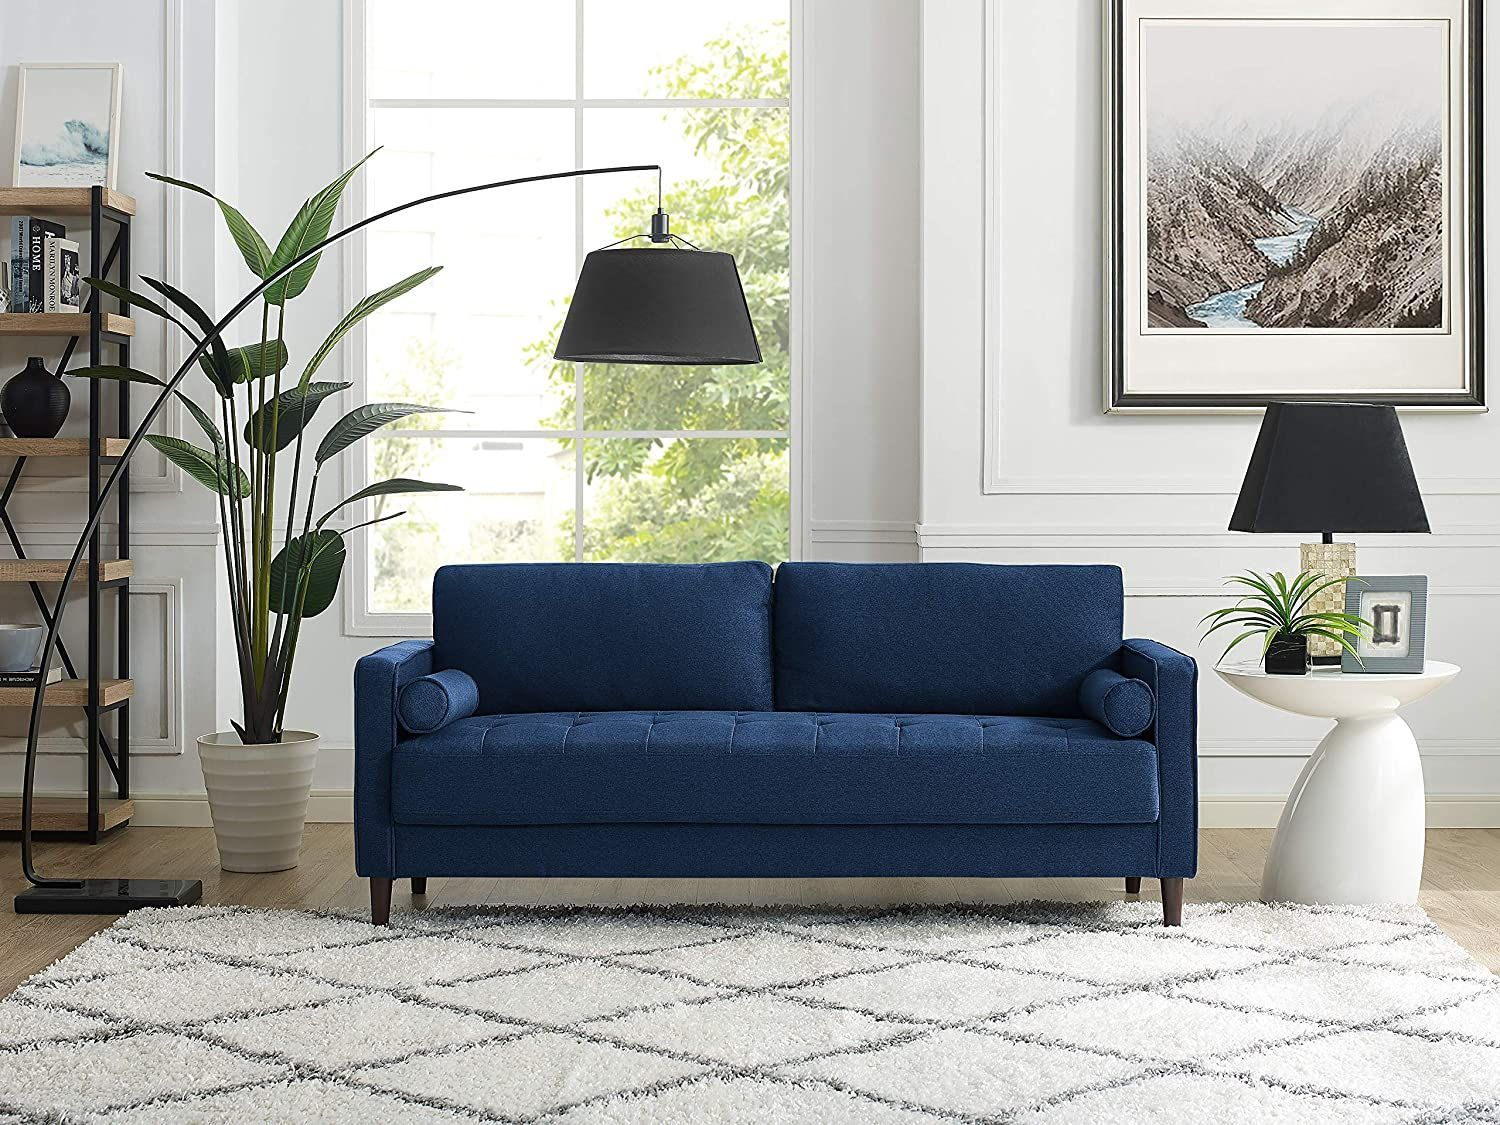 23 Gray Couch Living Room Ideas Best Rooms With Gray Couches In 2020 Lexington Sofa Upholstered Fabric Sofa #two #different #couches #in #living #room